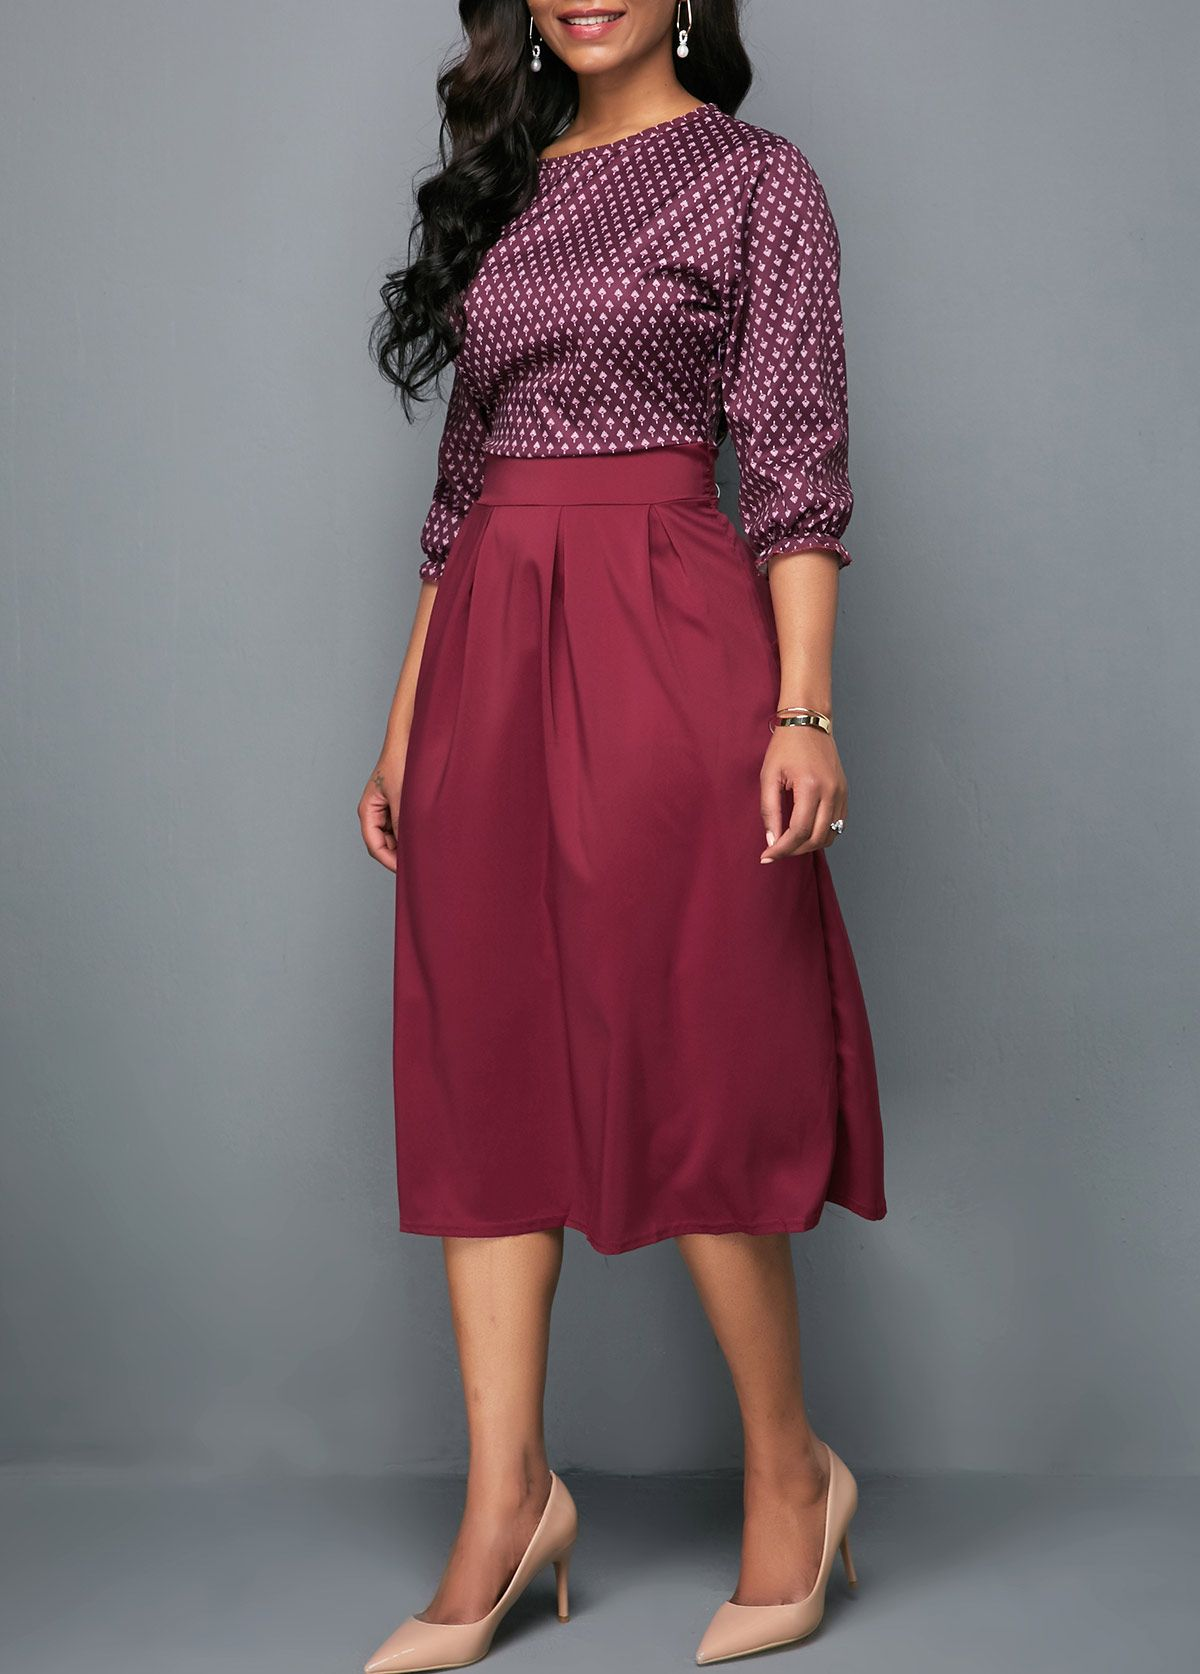 ef7981cb8482 High Waist Burgundy Three Quarter Sleeve Printed Dress | Rotita.com - USD  $24.55